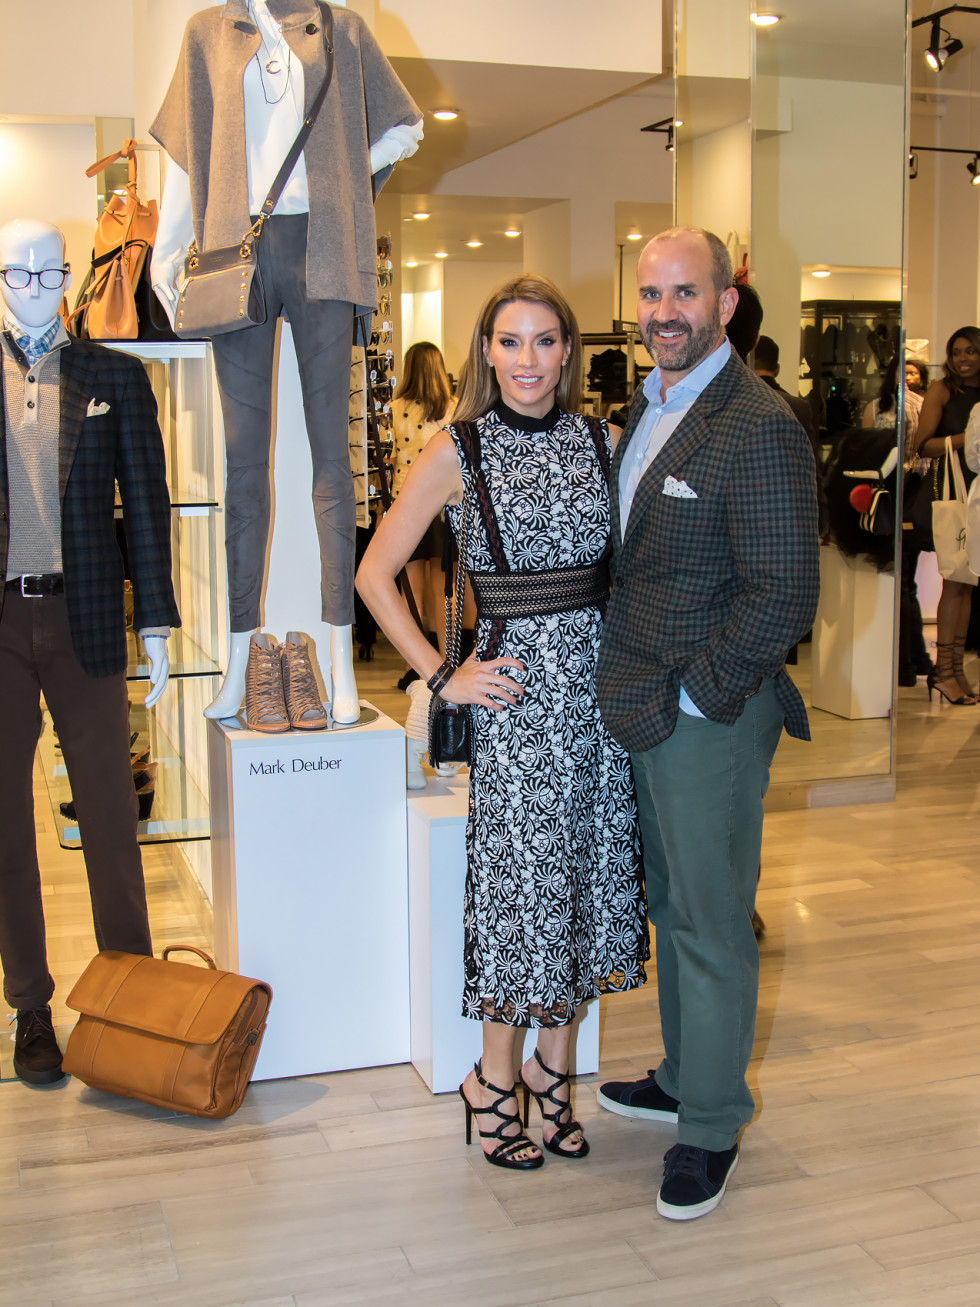 Mark Deuber, Cary Deuber, Dallas Stylemaker 2016 Reveal Party